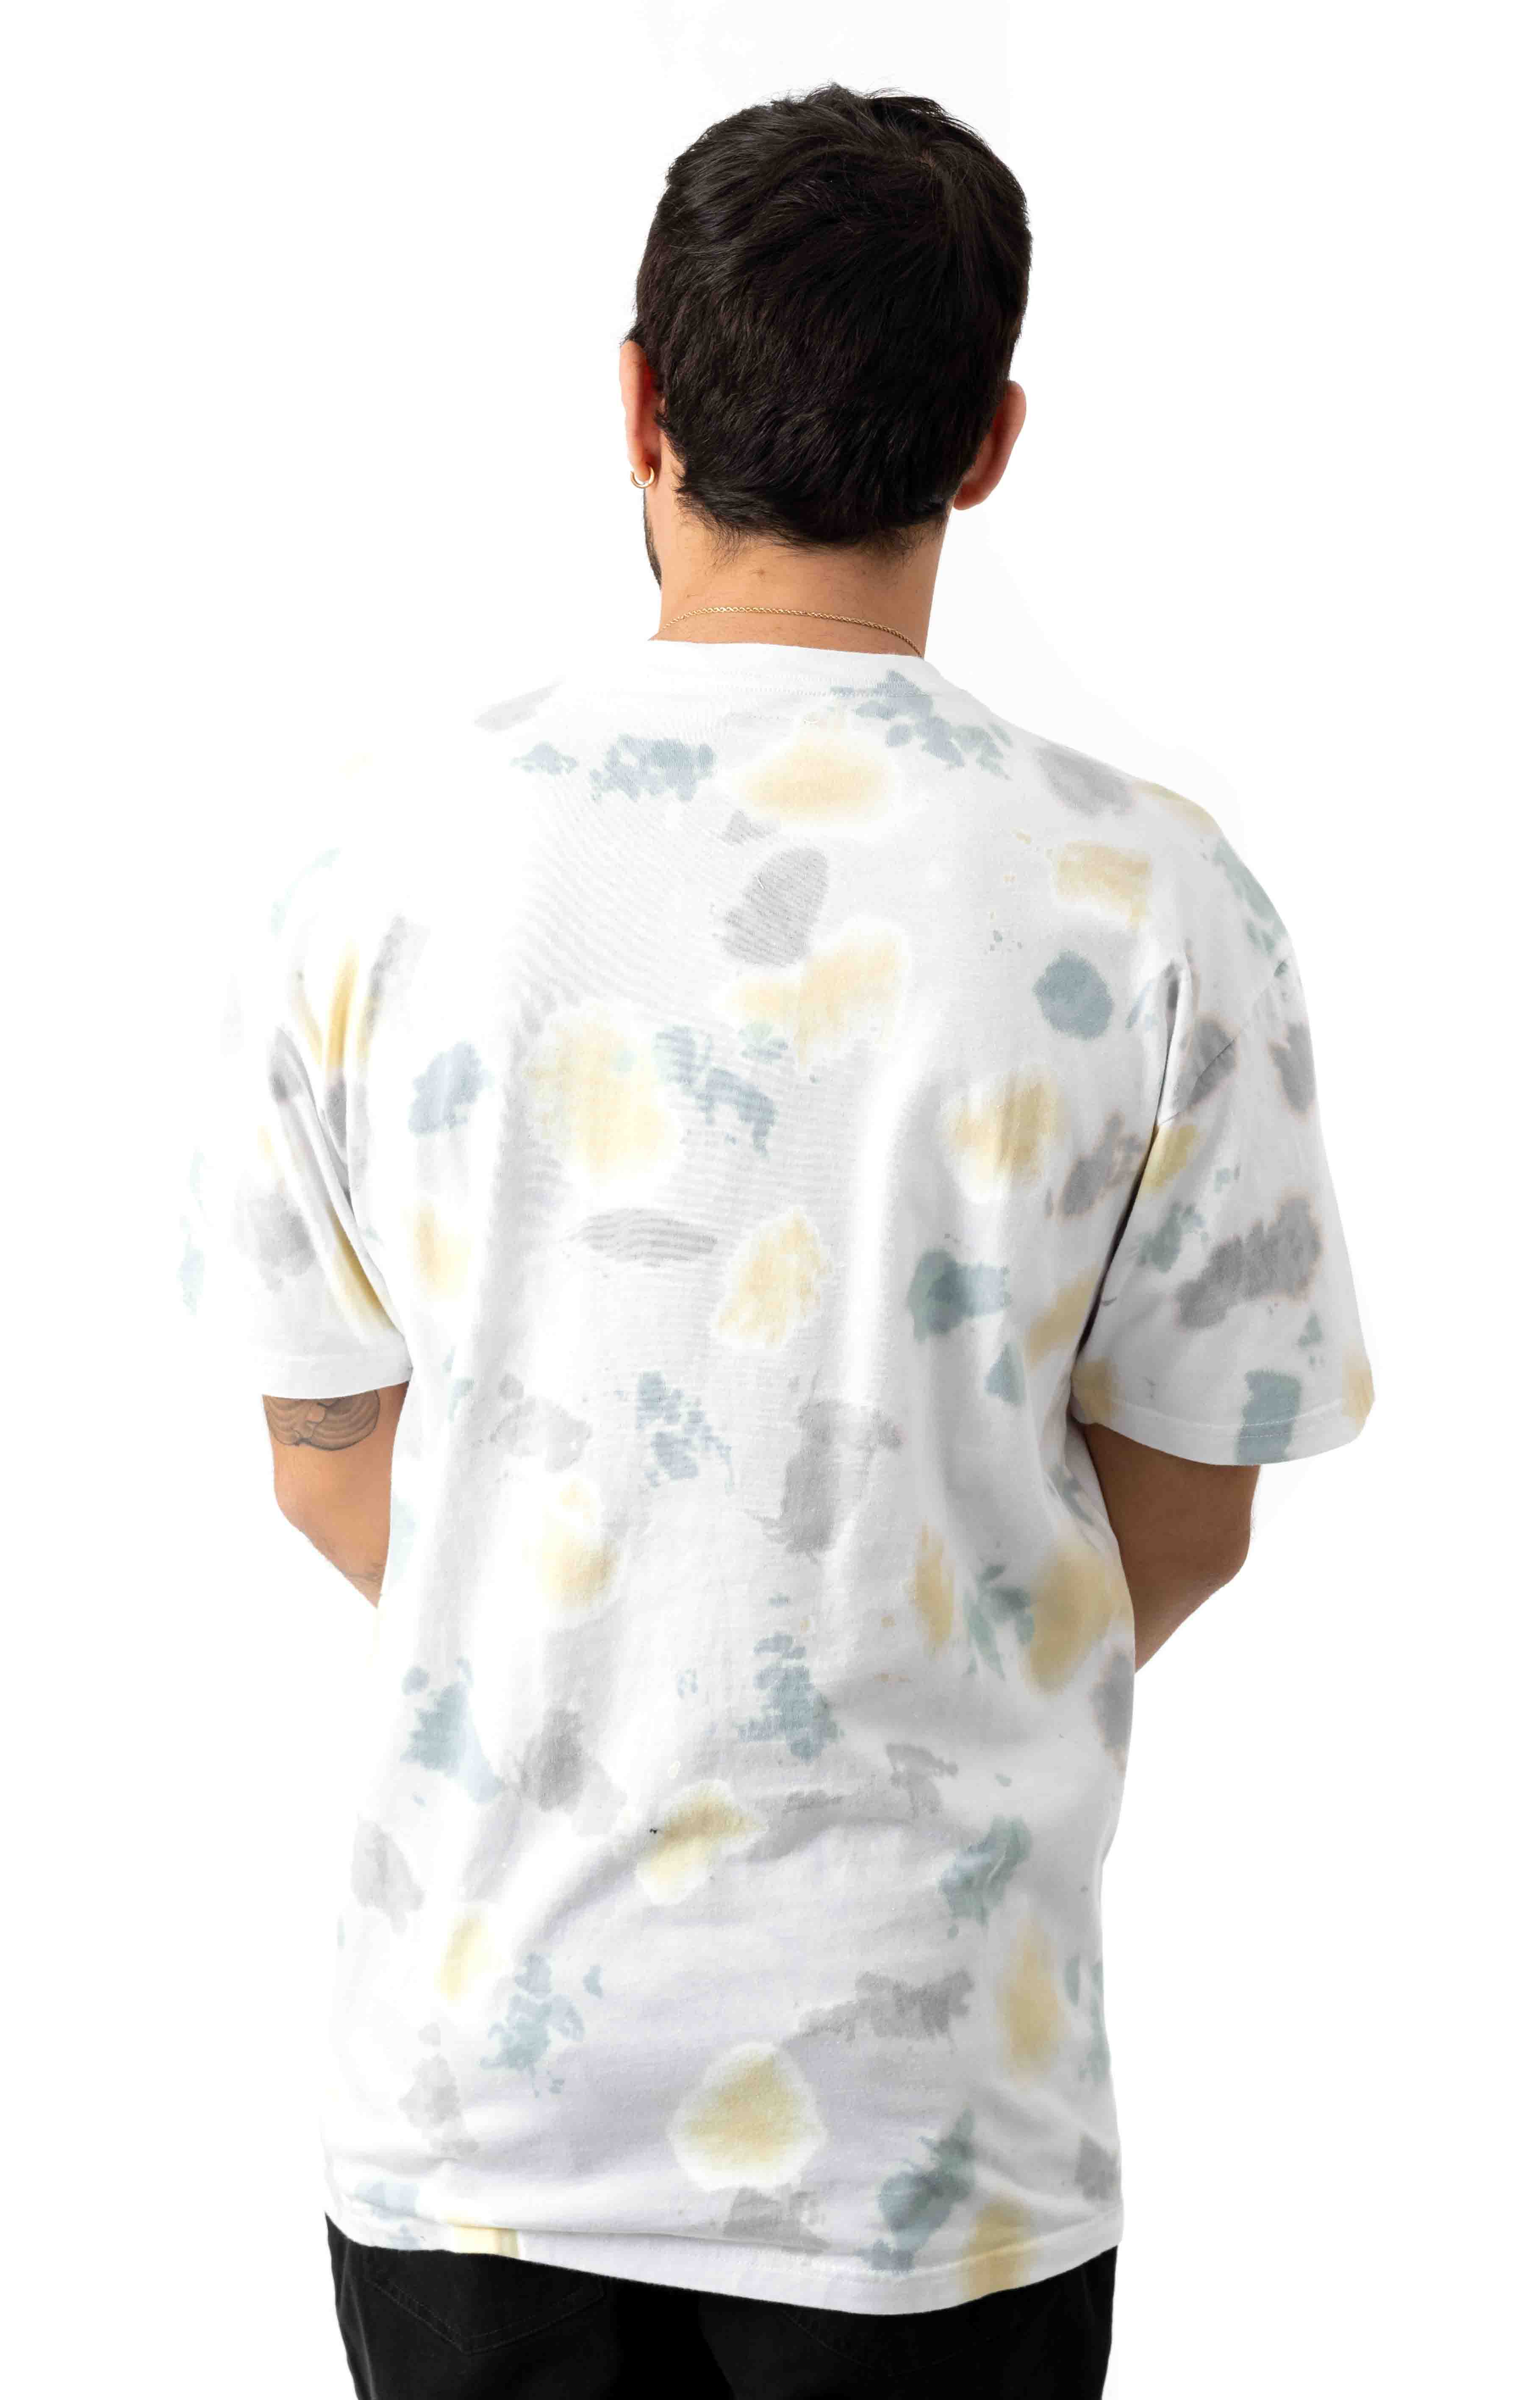 Elevated T-Shirt - Tie-Dye 3